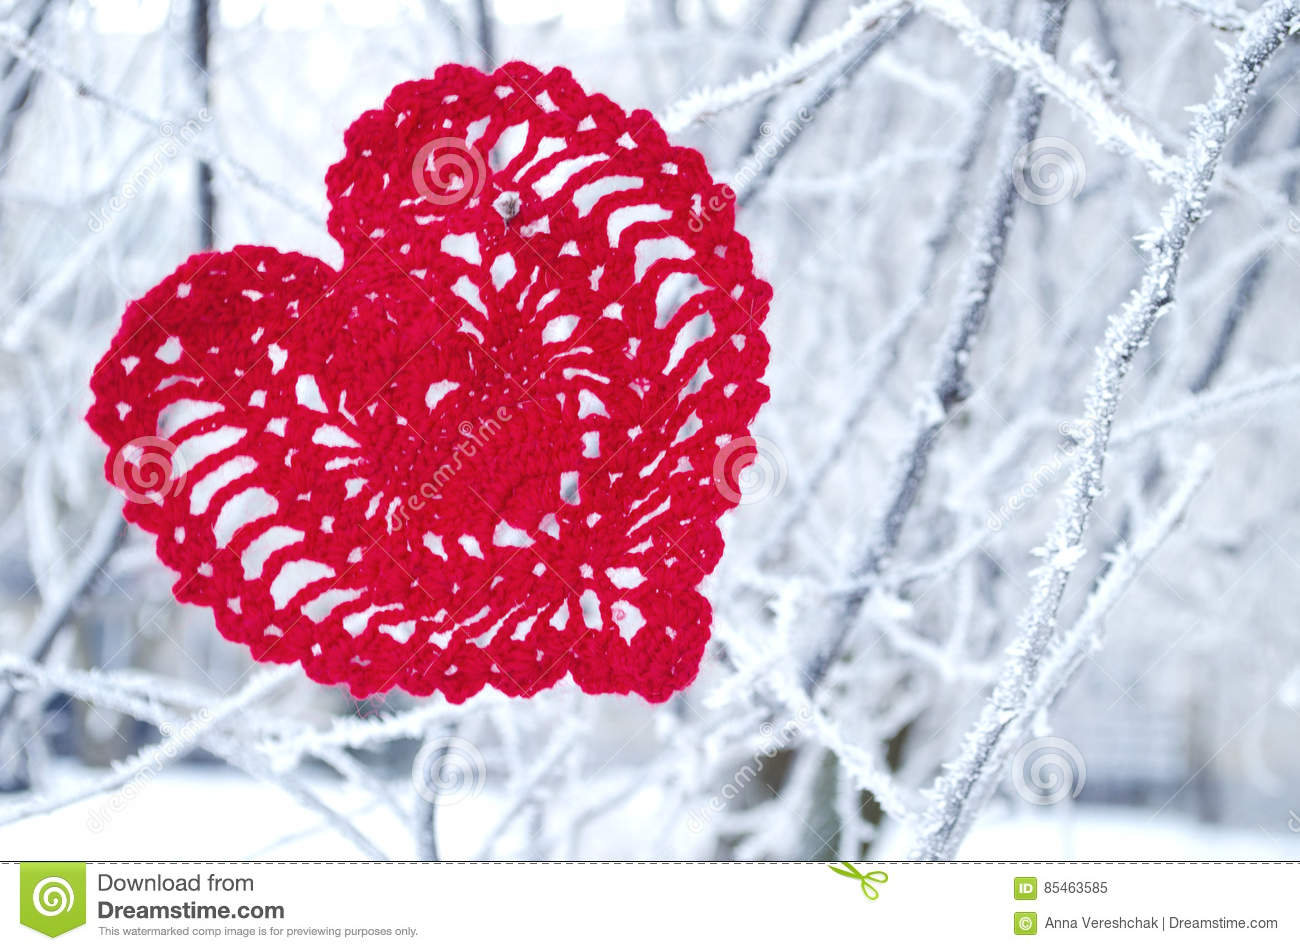 Decorative knitting heart on fir-tree branch. Winter holidays concept. Love concept background. February 14. Textile red heart on